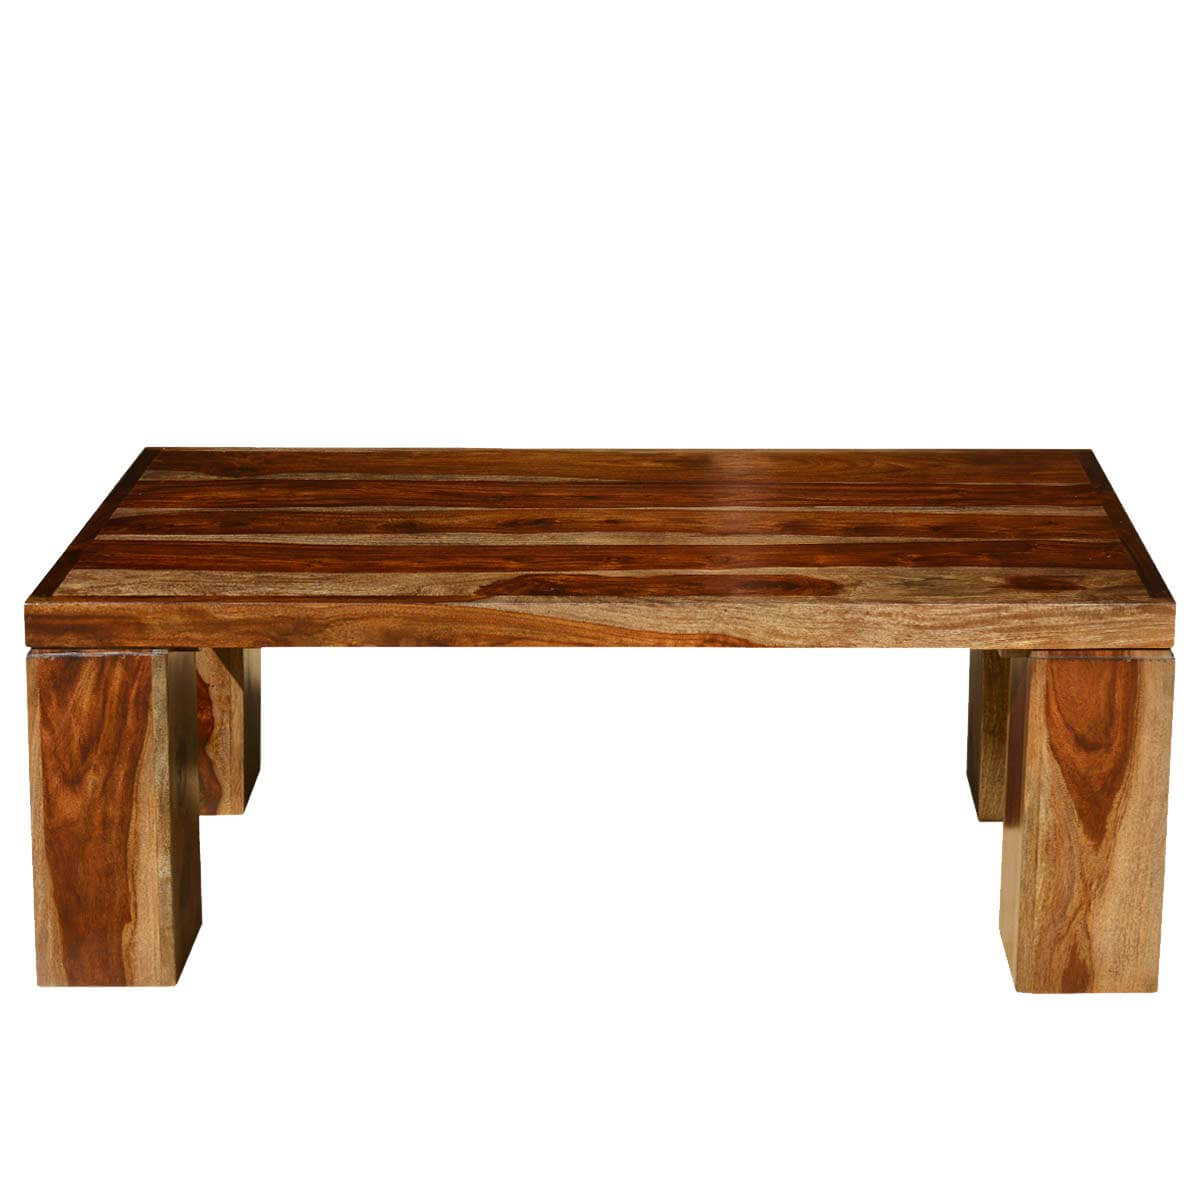 Contemporary Solid Wood Espresso Coffee Table W Block Legs